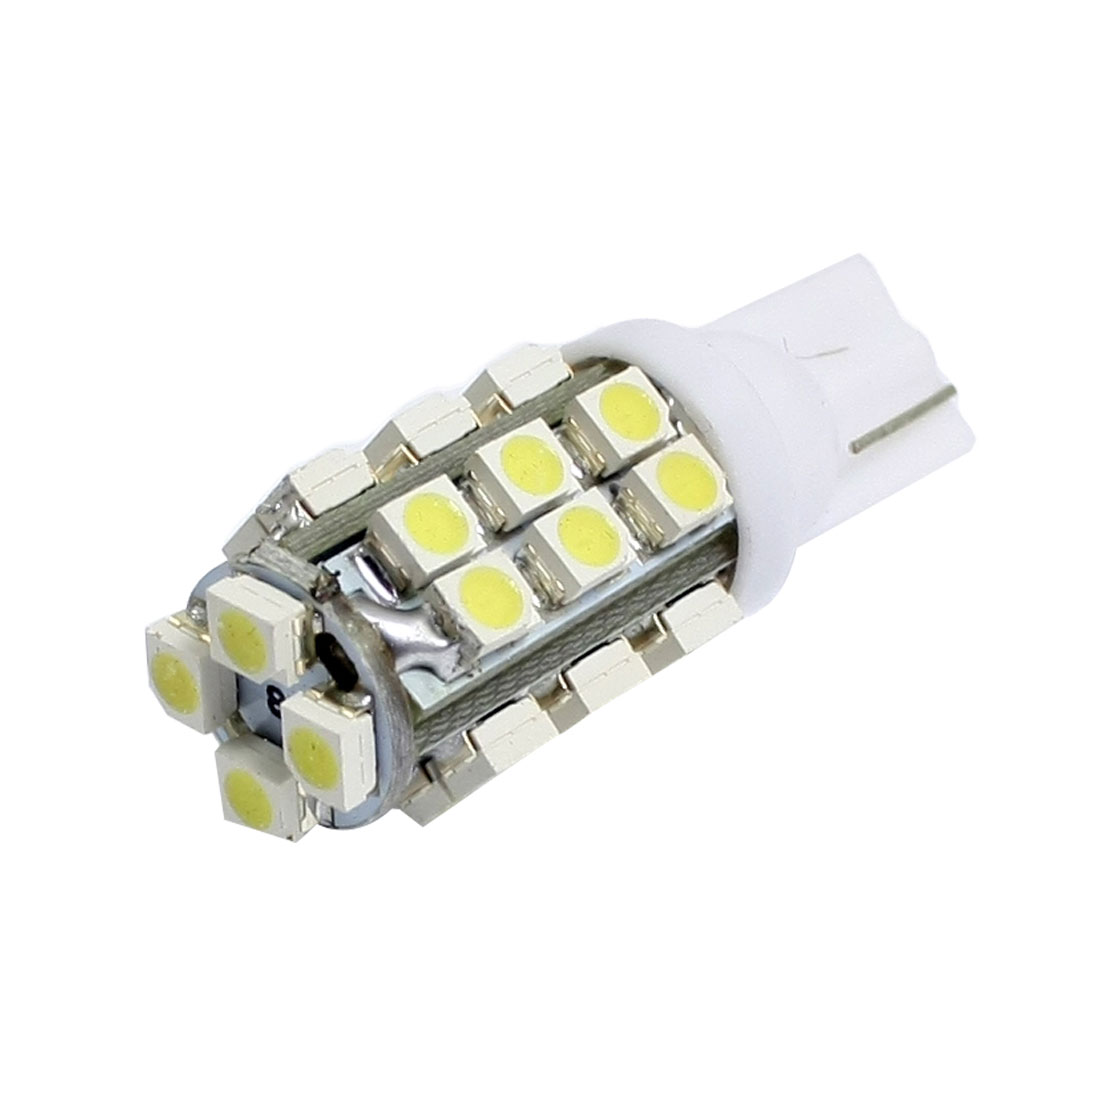 Car T10 White 1210 28 SMD LED Bulb Light Turning Lamp